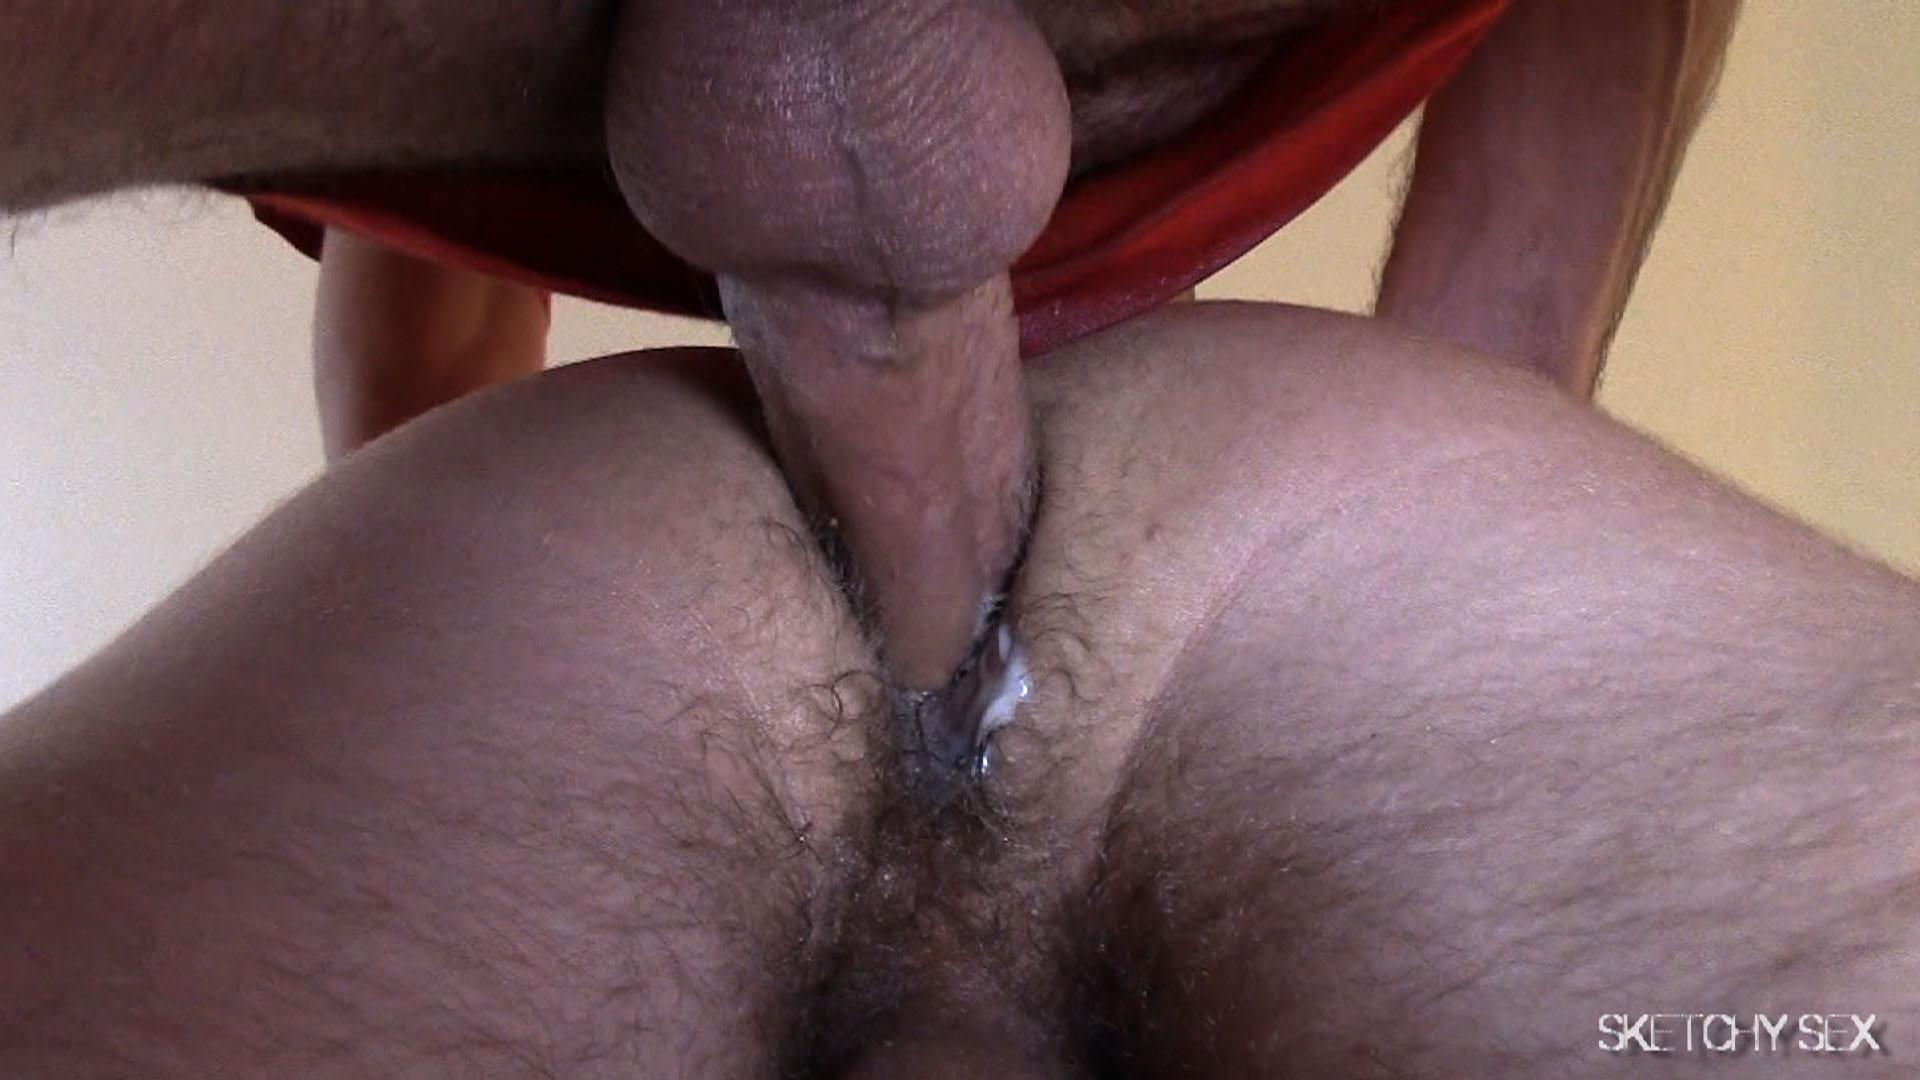 "Sketchy Sex Nate Getting Fucked Bareback By A 10 Inch Craigslist Cock Amateur Gay Porn 11 Taking A 10"" Craigslist Cock Bareback While The Roommate Watches"